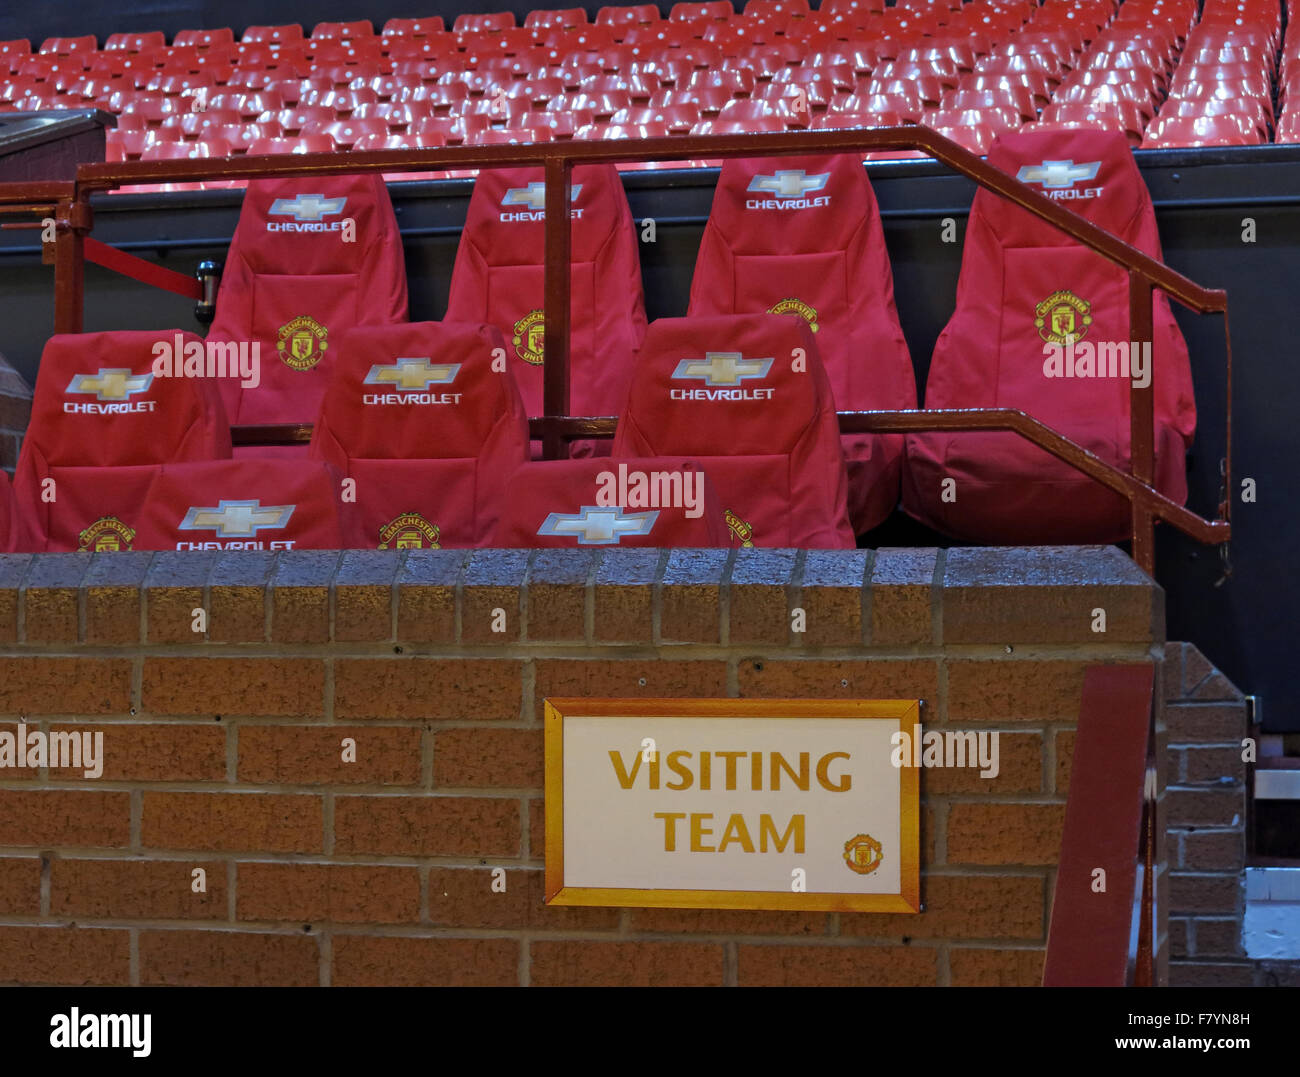 Area for visiting team at Man Utd,Old Trafford,Manchester united,England,UK,Chevrolet,red,seats - Stock Image